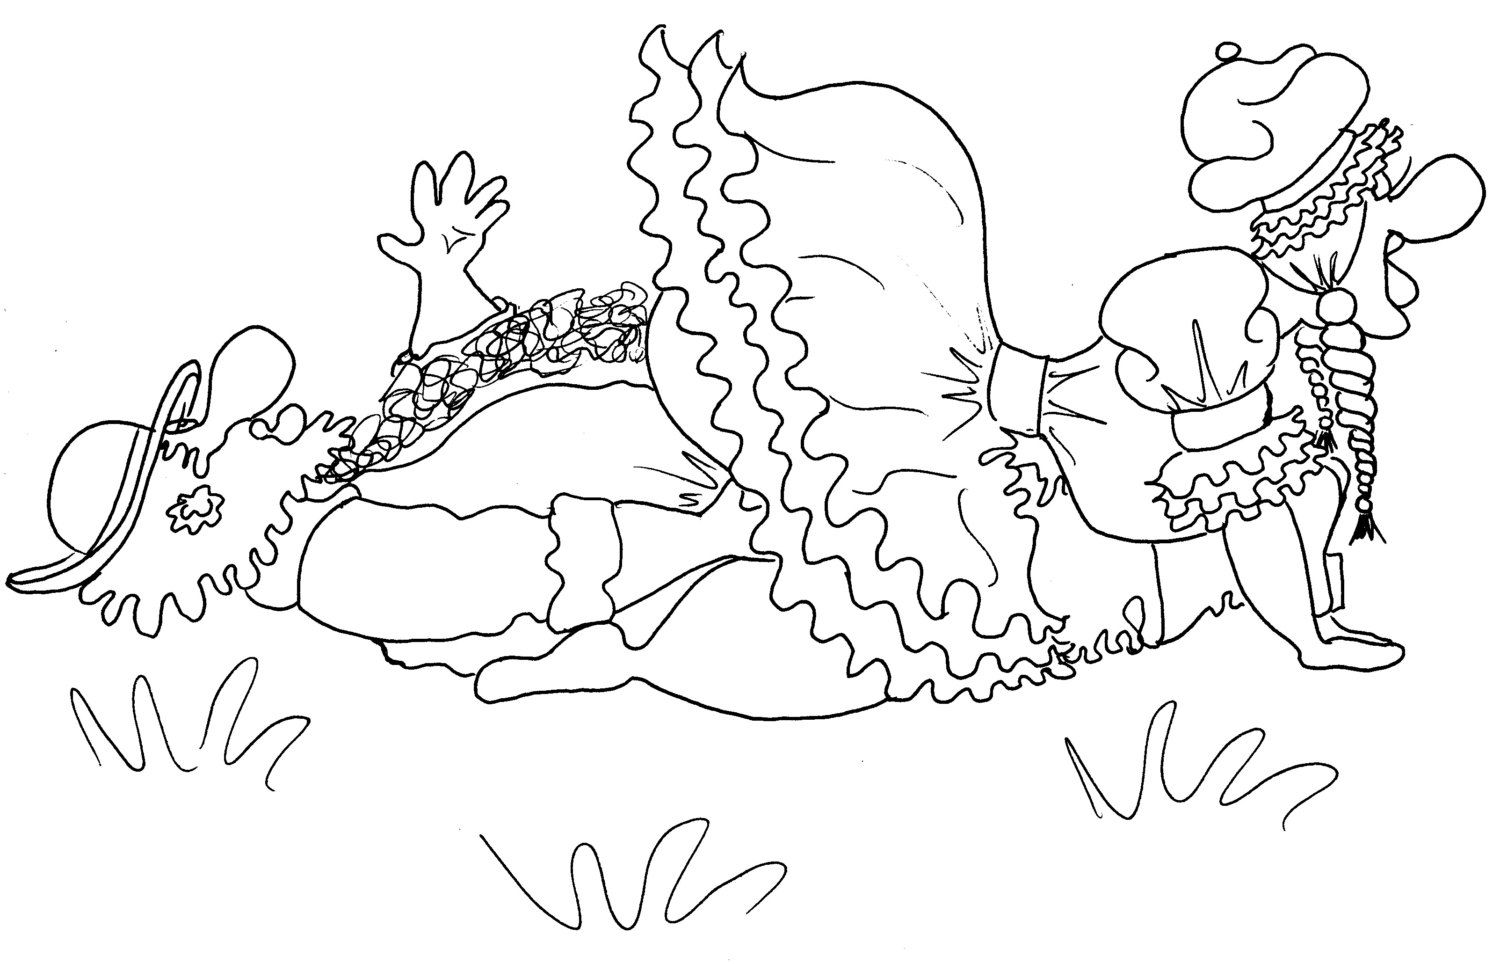 the rider kama sutra position sexy coloring pages from the chubby art cartoon colouring book - Sexy Coloring Pages